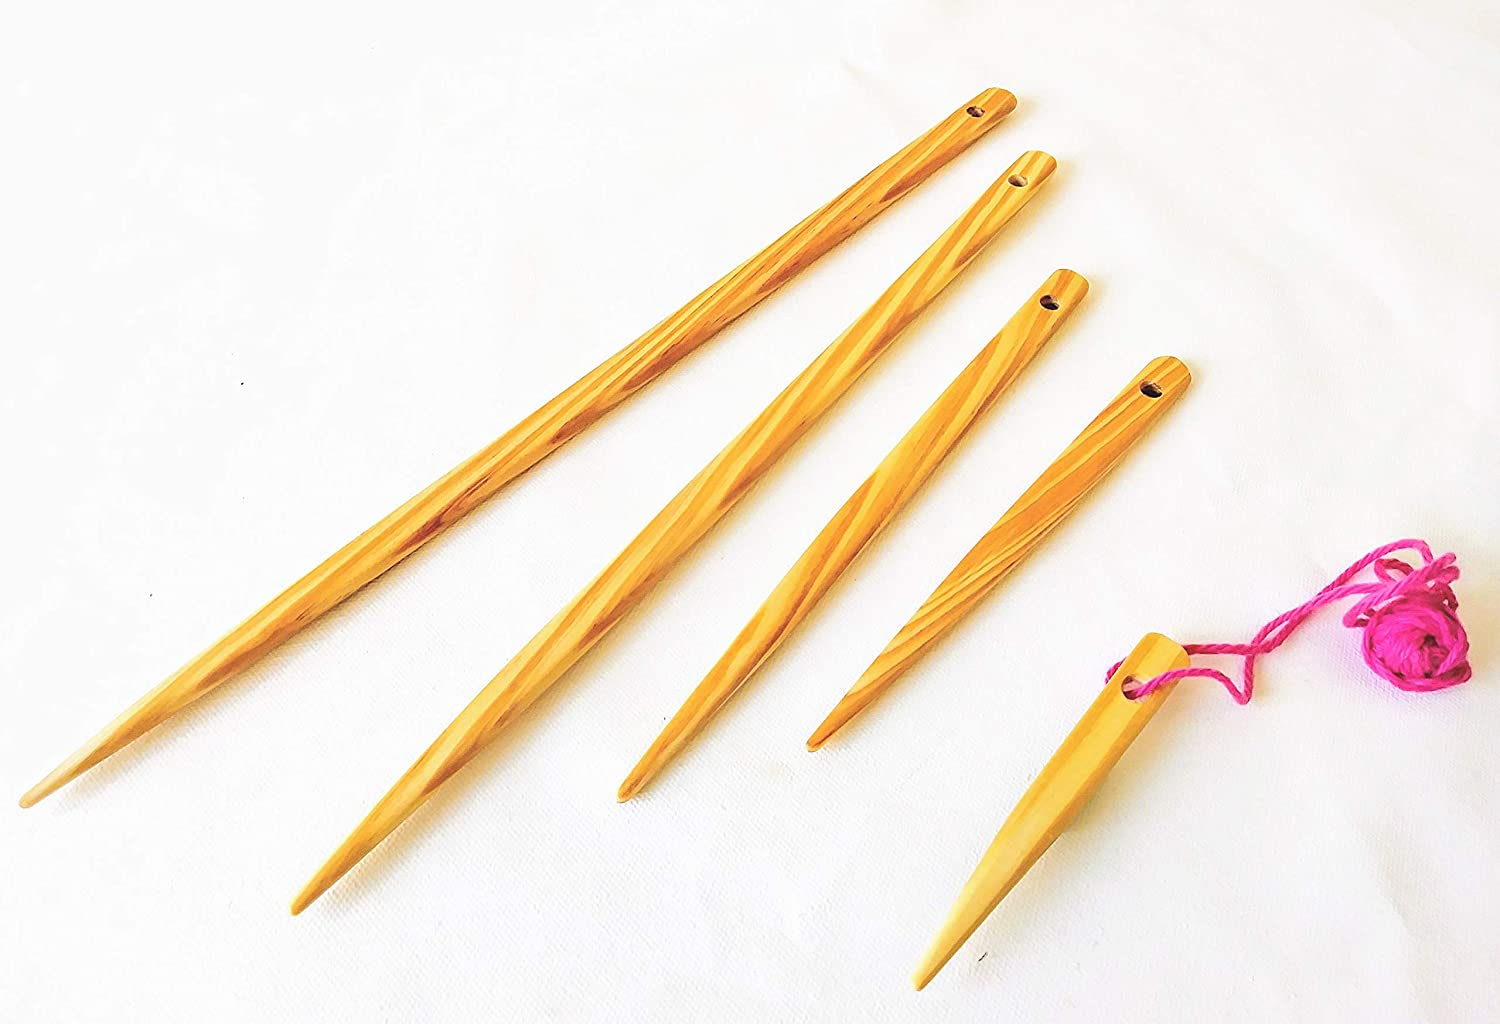 5 piece large and small weaving needles. 4,6,8,12 and 14 inches LoomsAndToolz 4336905829